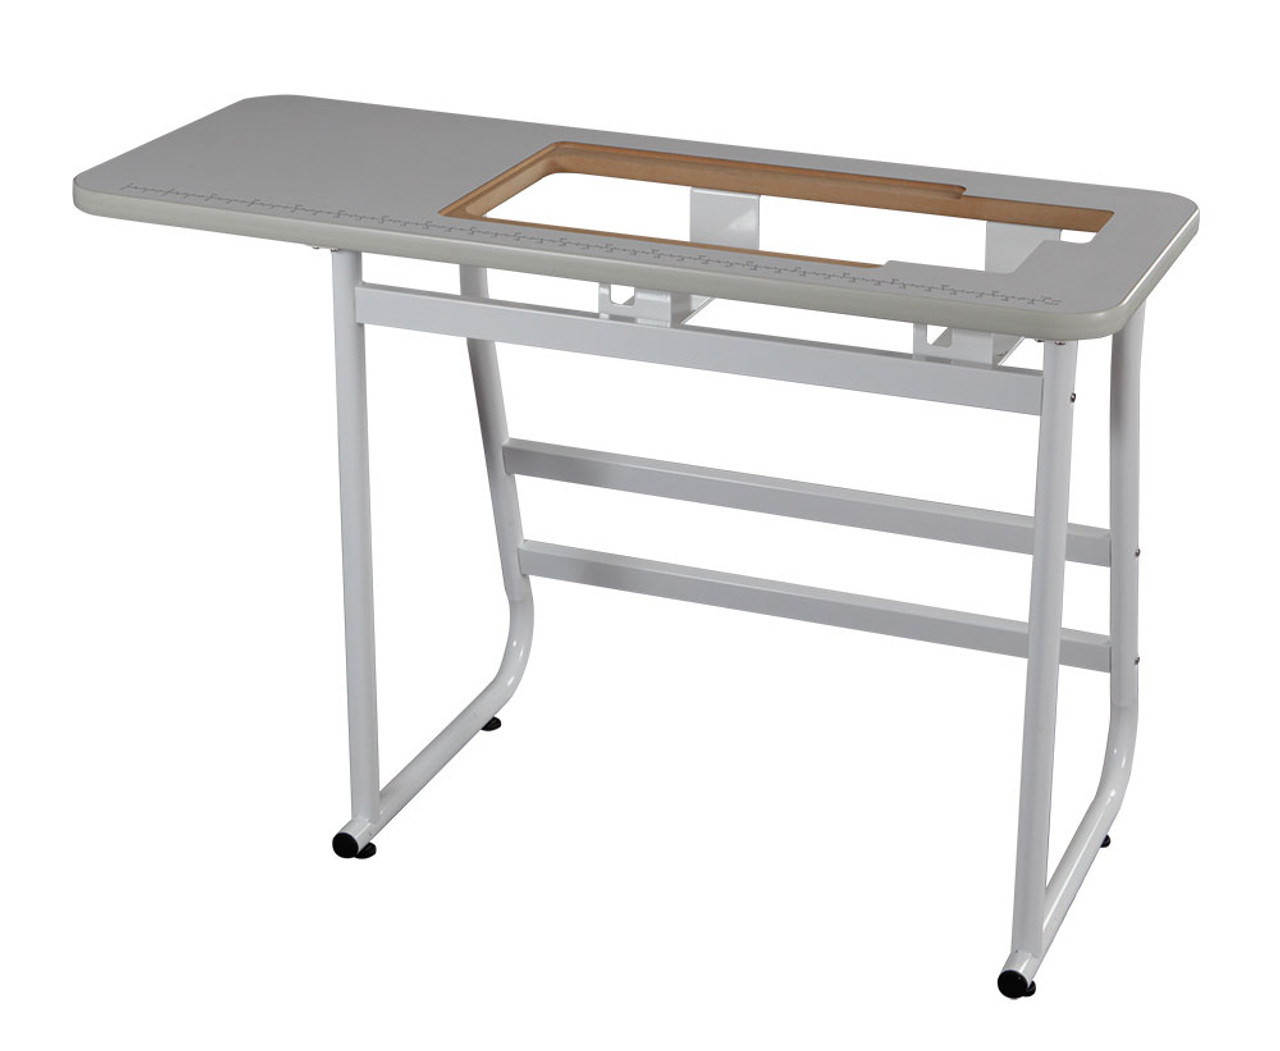 Image result for janome 6700p and universal table